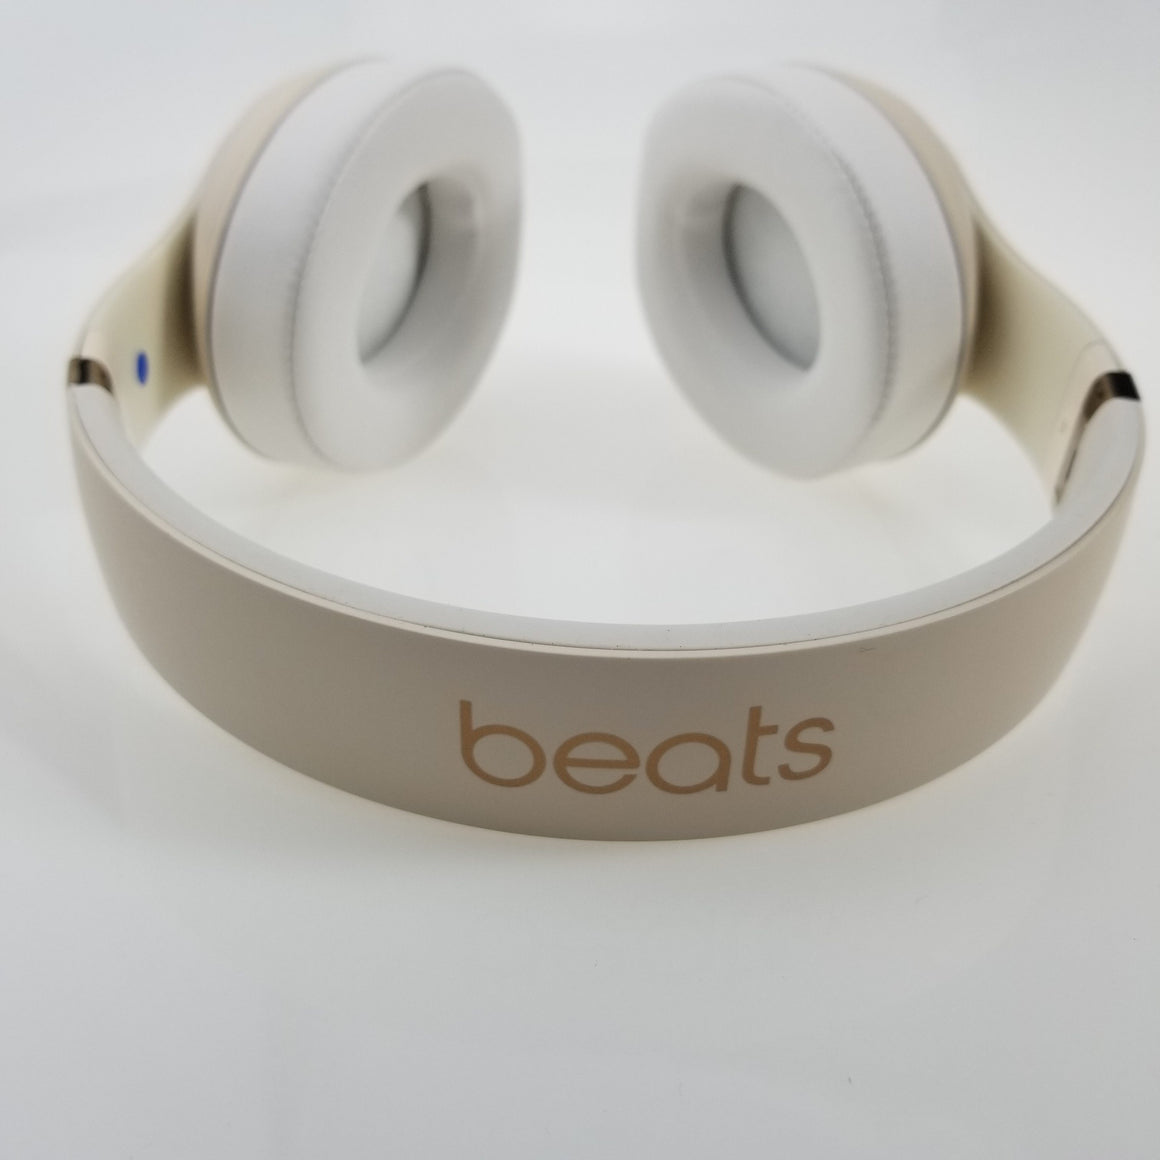 Beats Studio3 Original Over-Ear Headset Hands-free Earphone Wireless Bluetooth Headphone Music Fast Charge Anti Noise